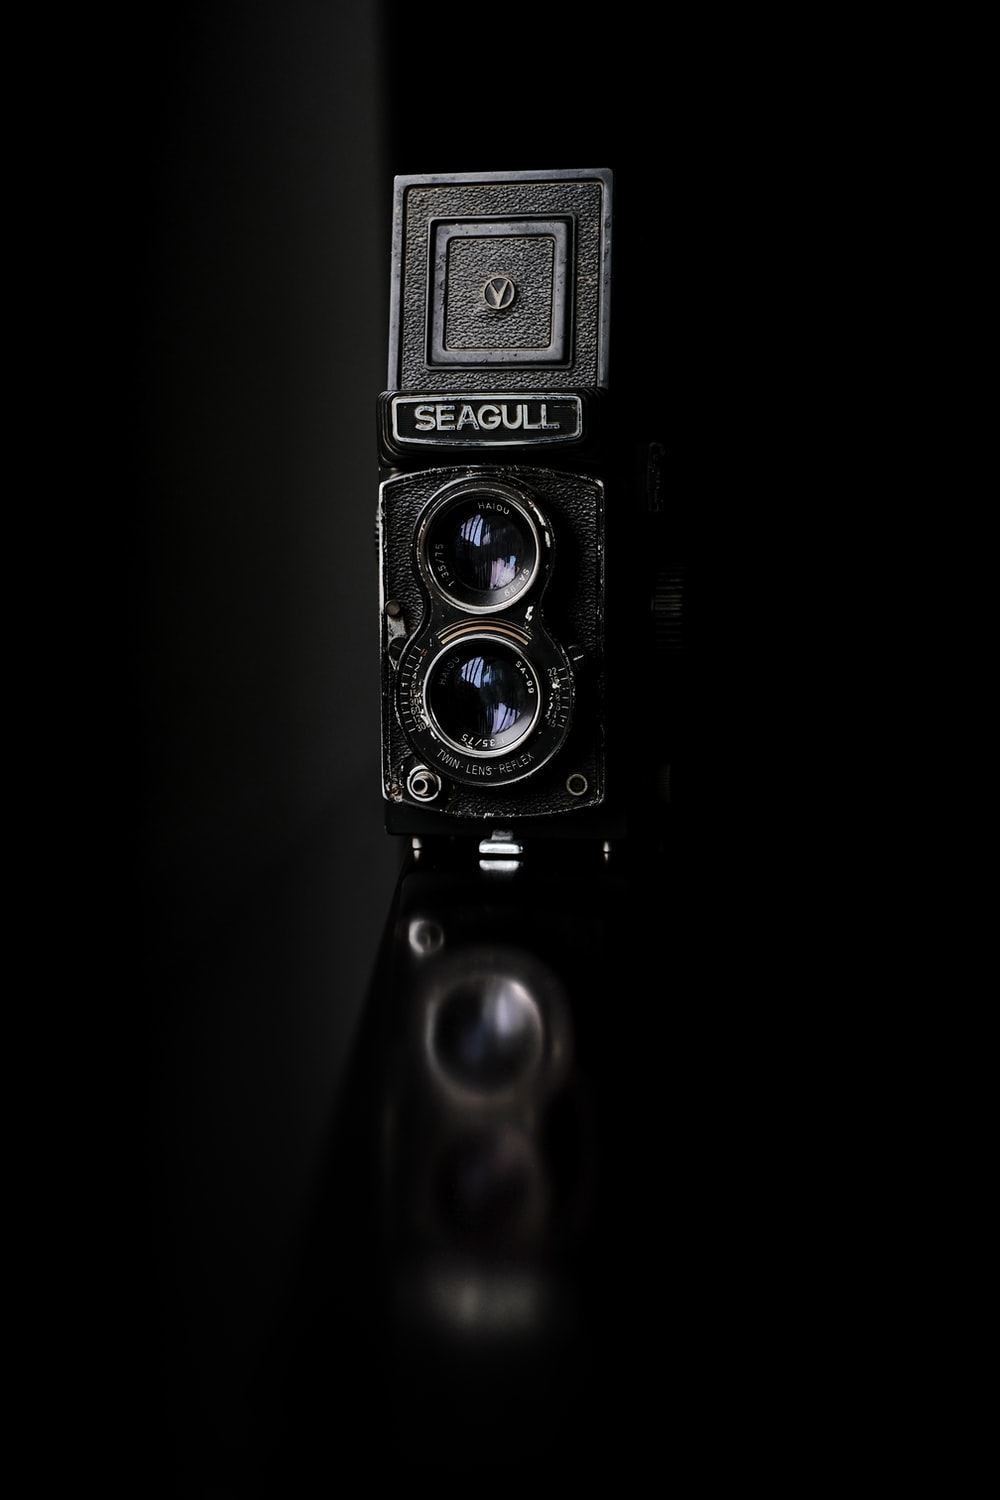 black and silver camera in black background